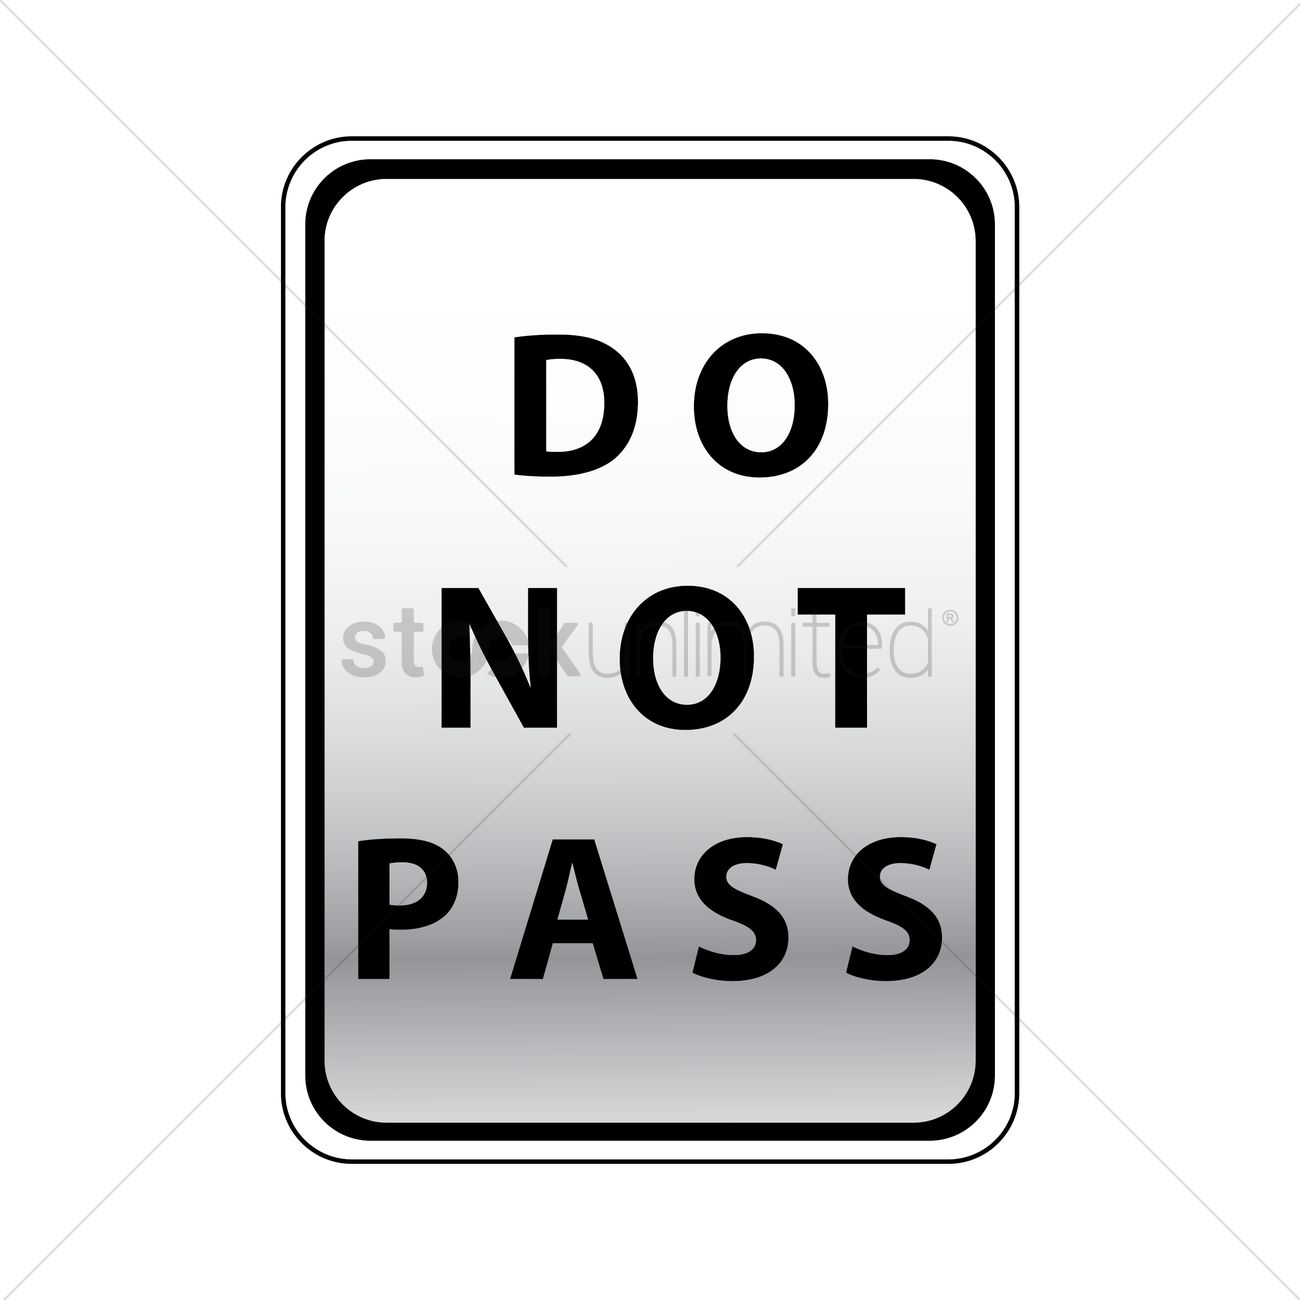 Do not pass road sign Vector Image.